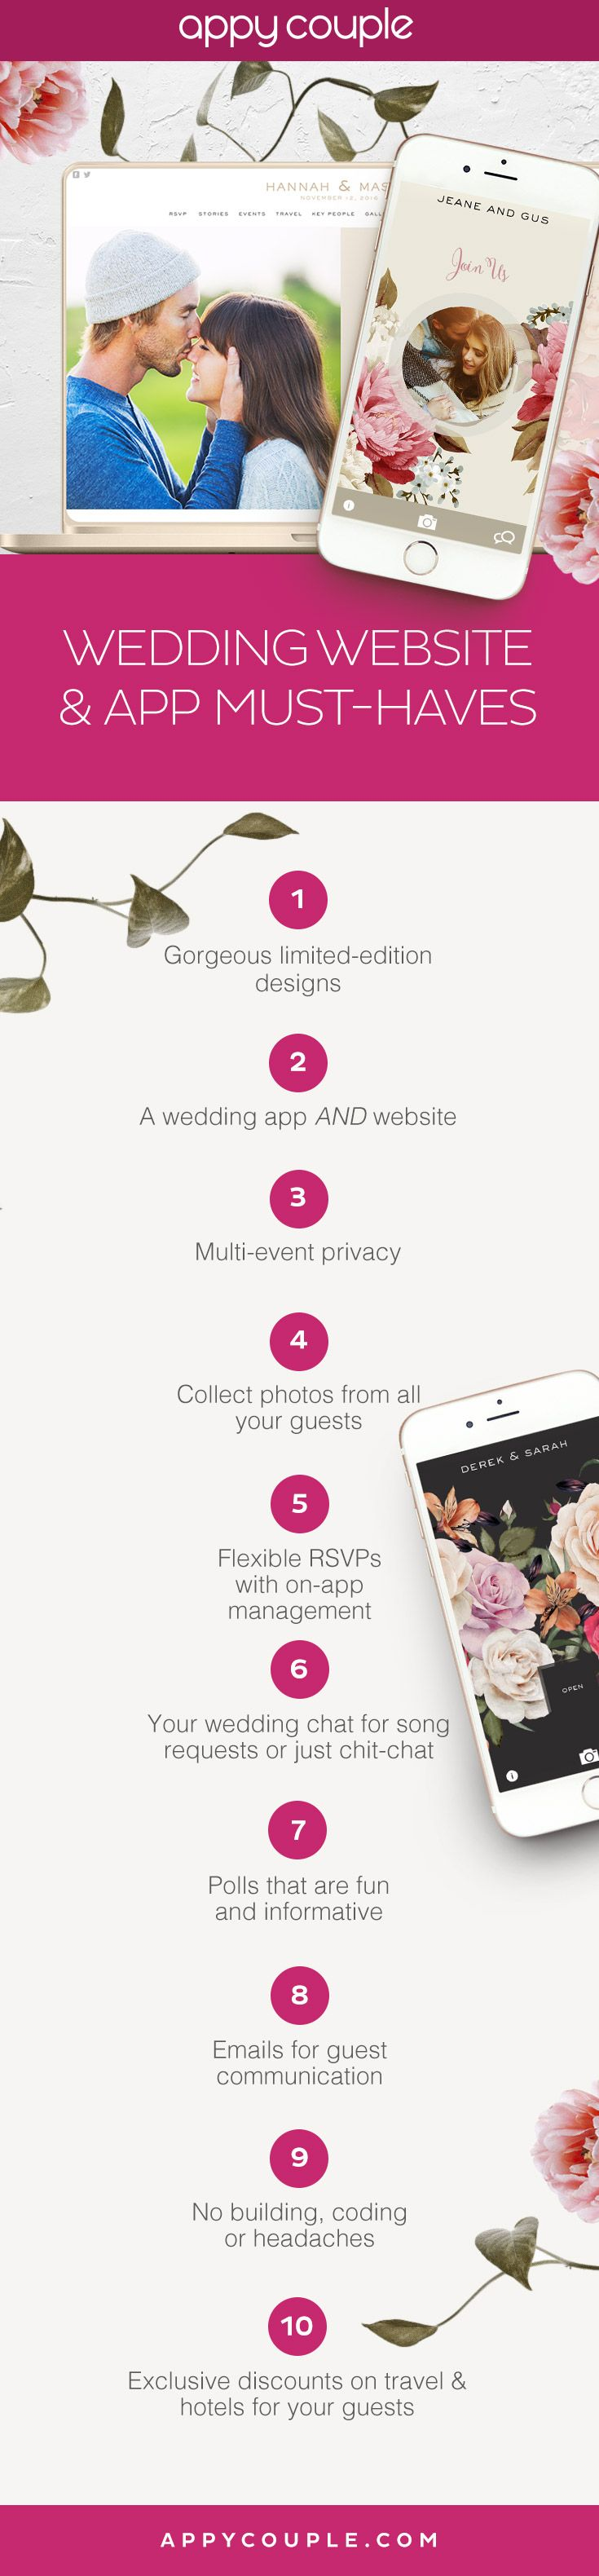 The features you can't (and shouldn't ) live without on your wedding website and app. Appy Couple has them all so you can share, invite and delight your guests.